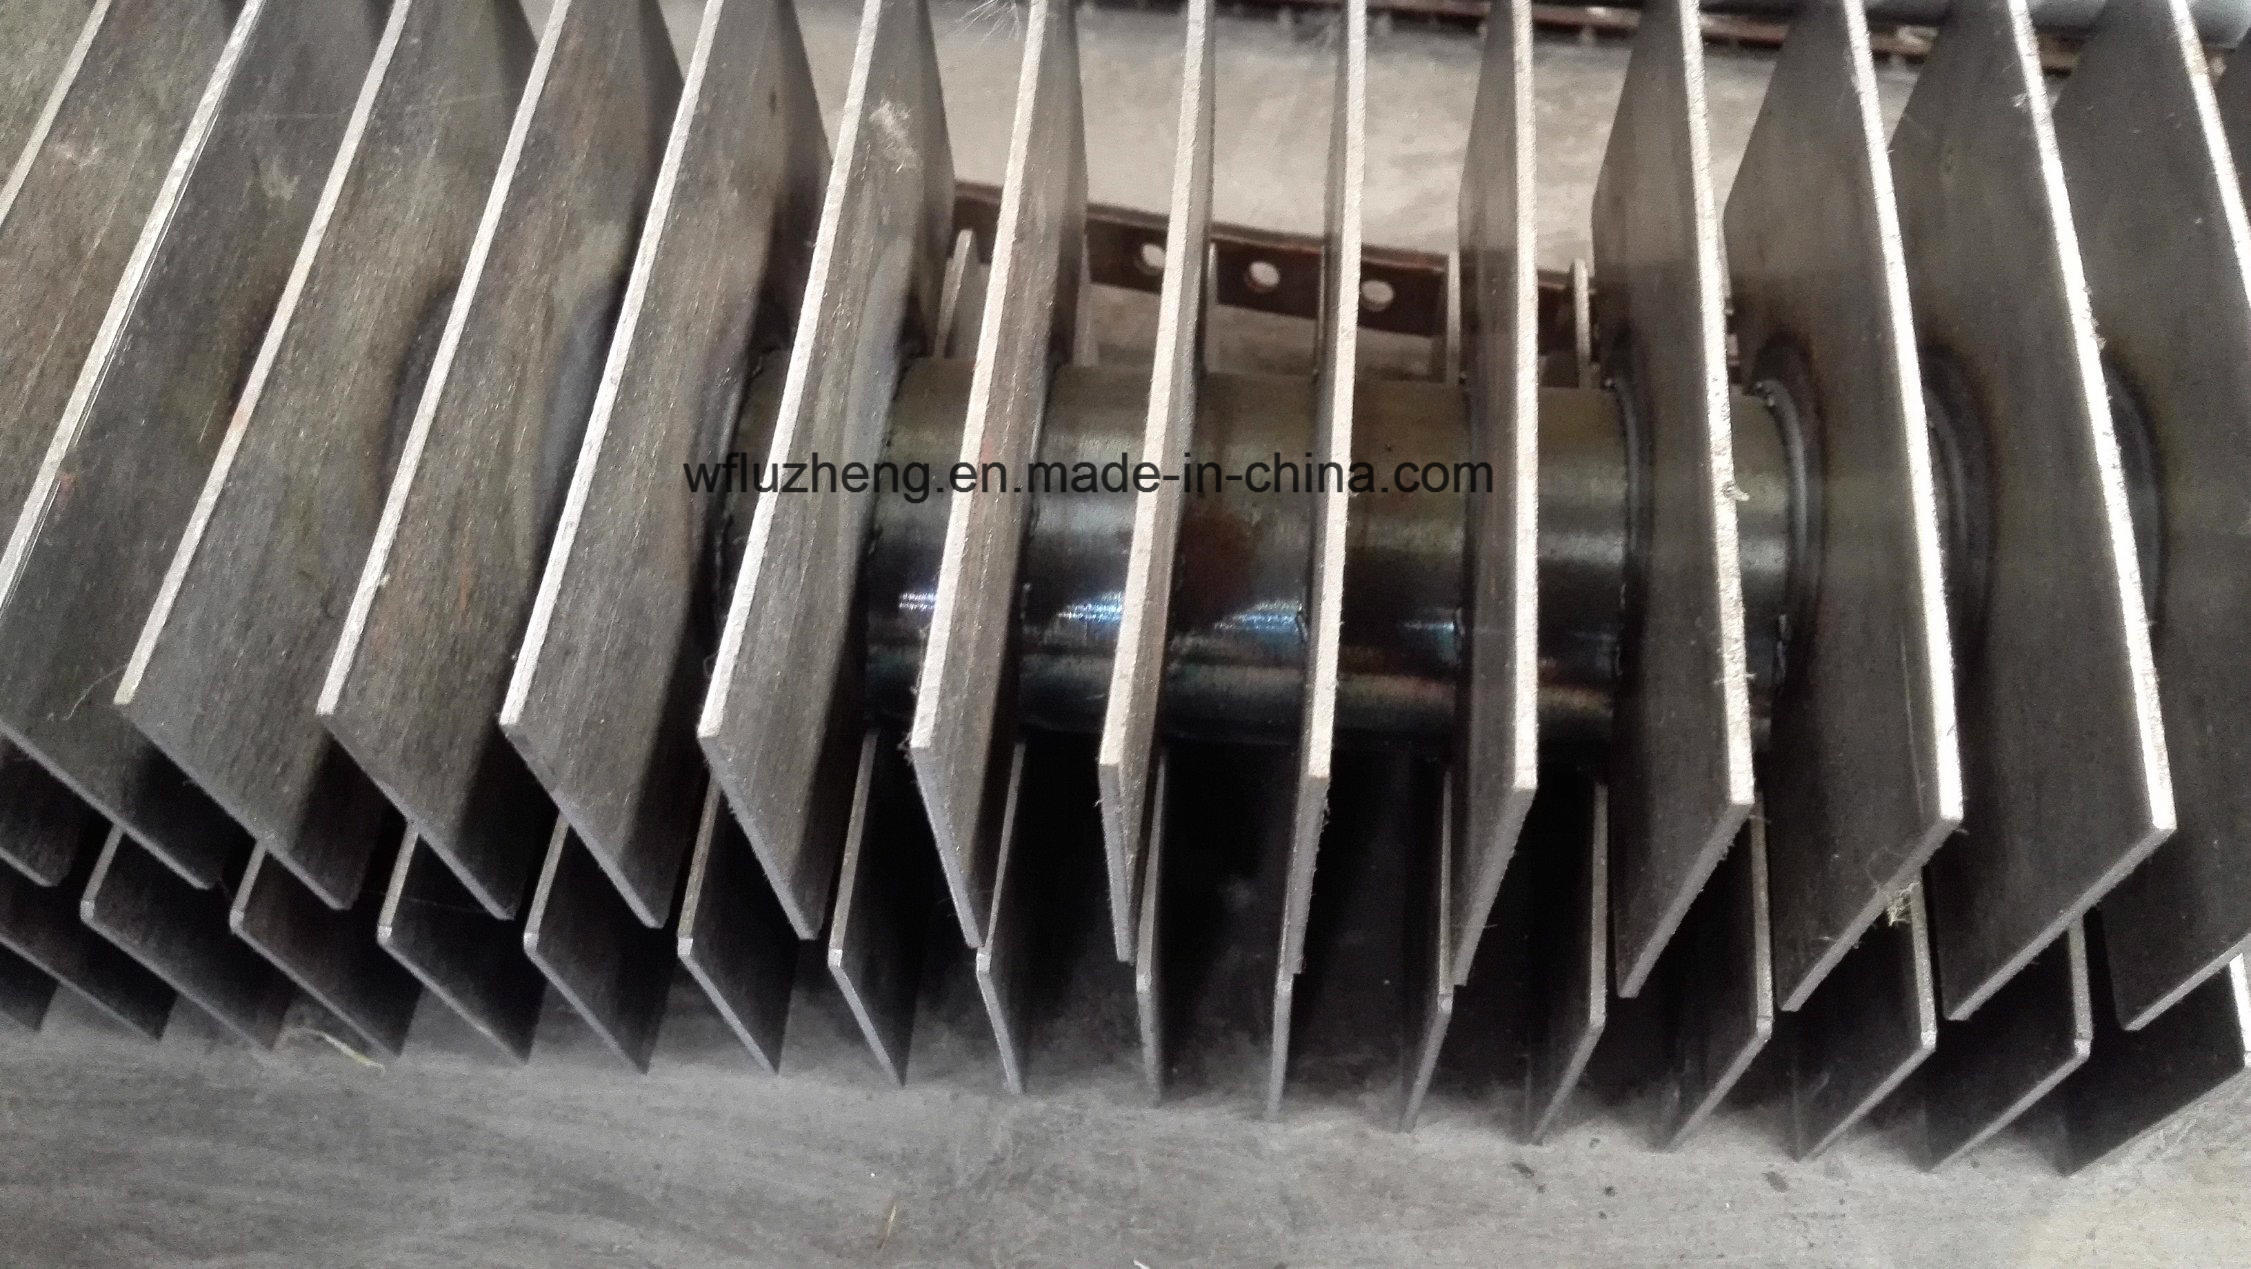 Carbon Steel or Stainless Steel Cooling H Hh Spiral Fin Tube for Economizer Units